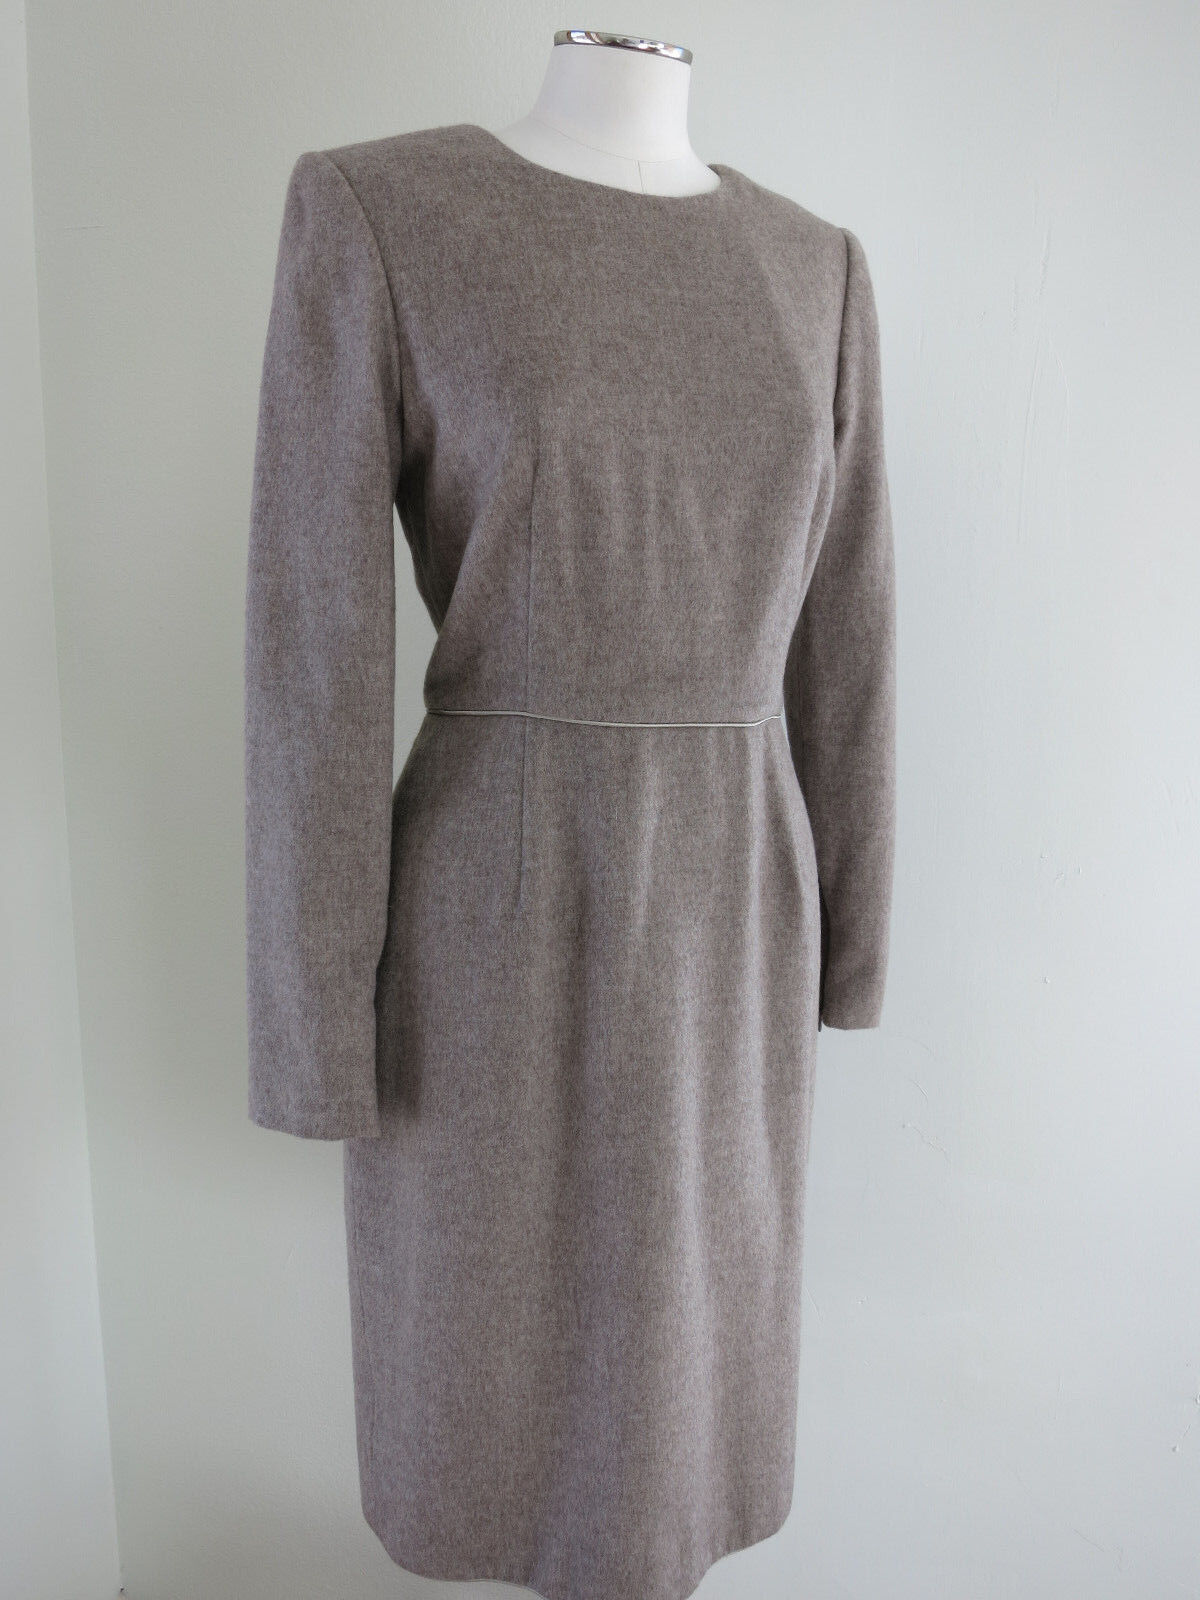 DENNIS BASSO WOMENS DRESS EXQUISITE CASHMERE WOVEN NWOT OATMEAL 4